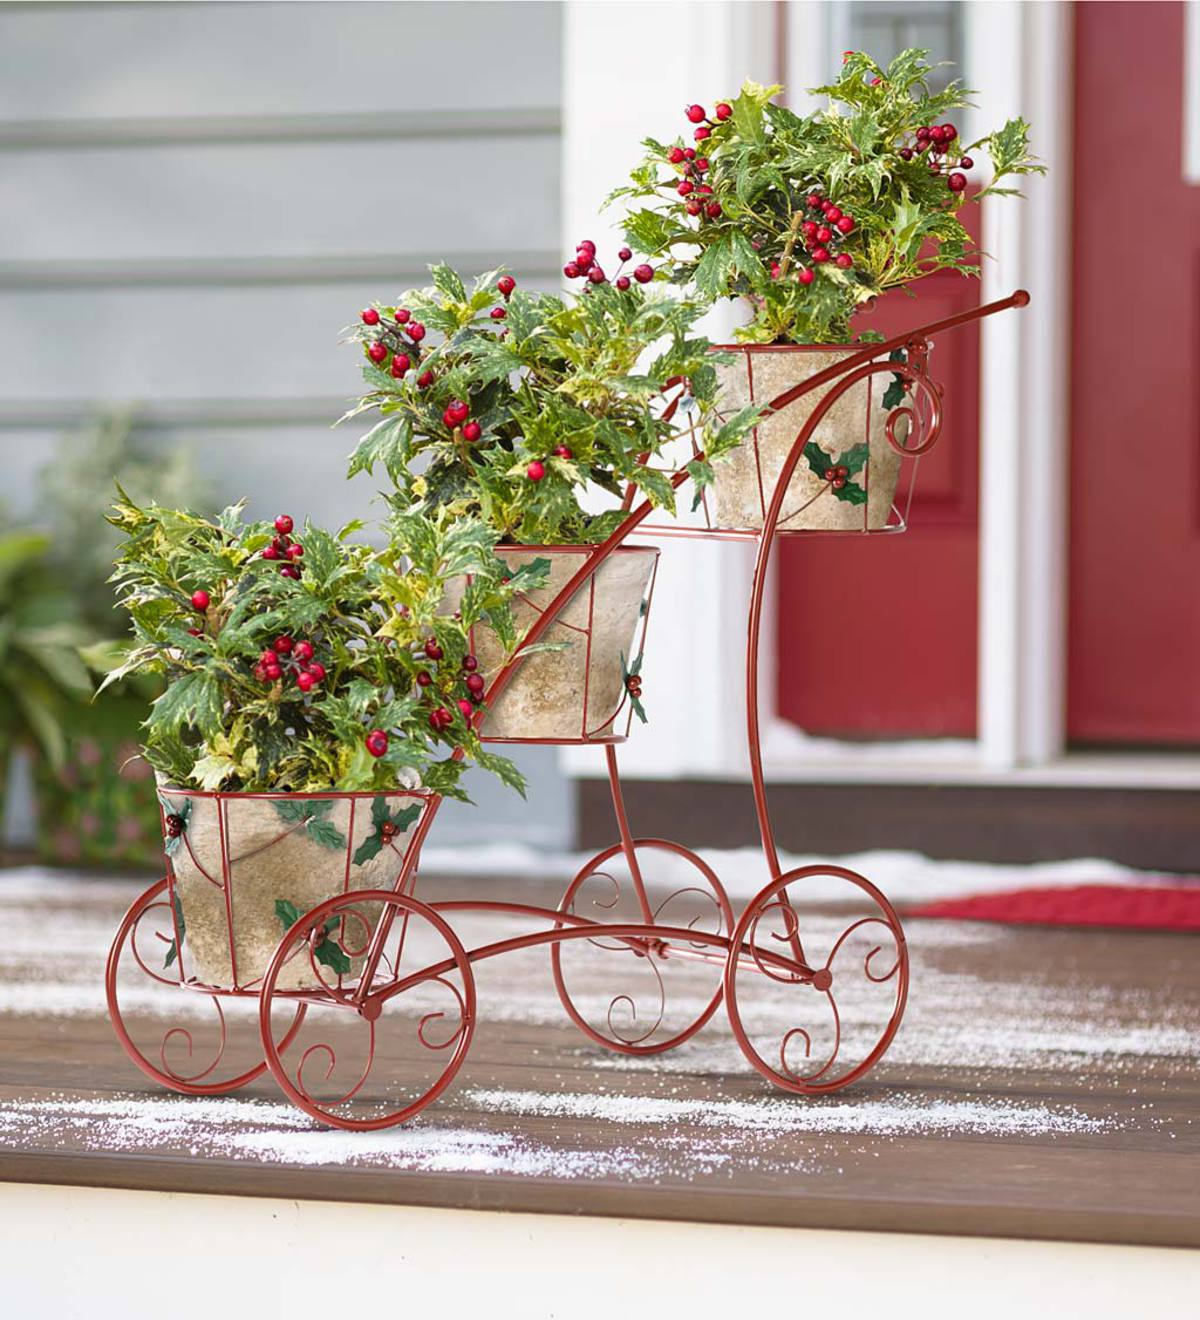 Three Tier Red Plant Stand with Holly Accents